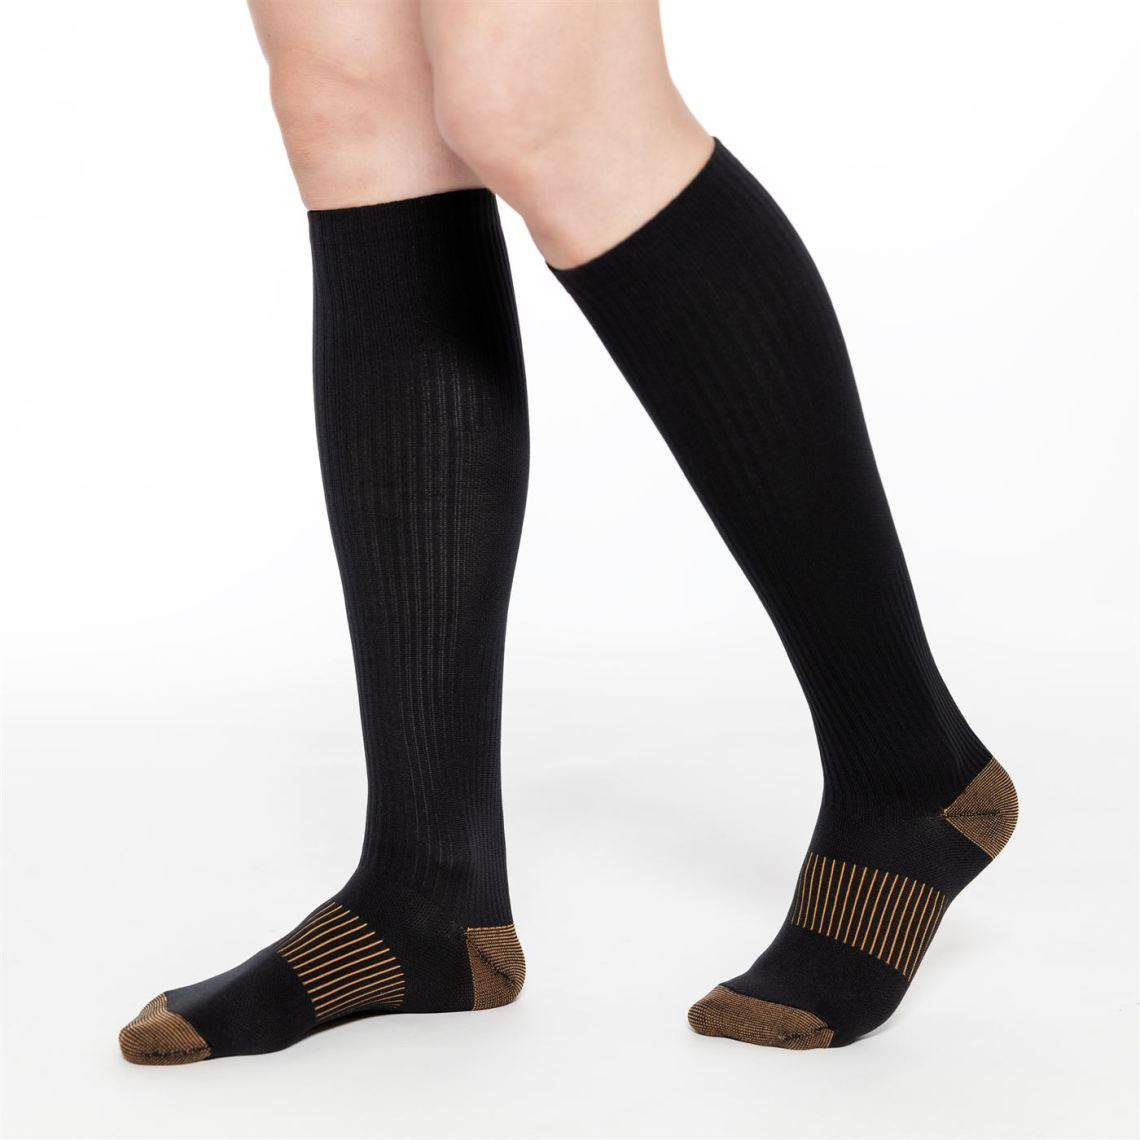 Knee High Recovery Support Socks_Copper Compression